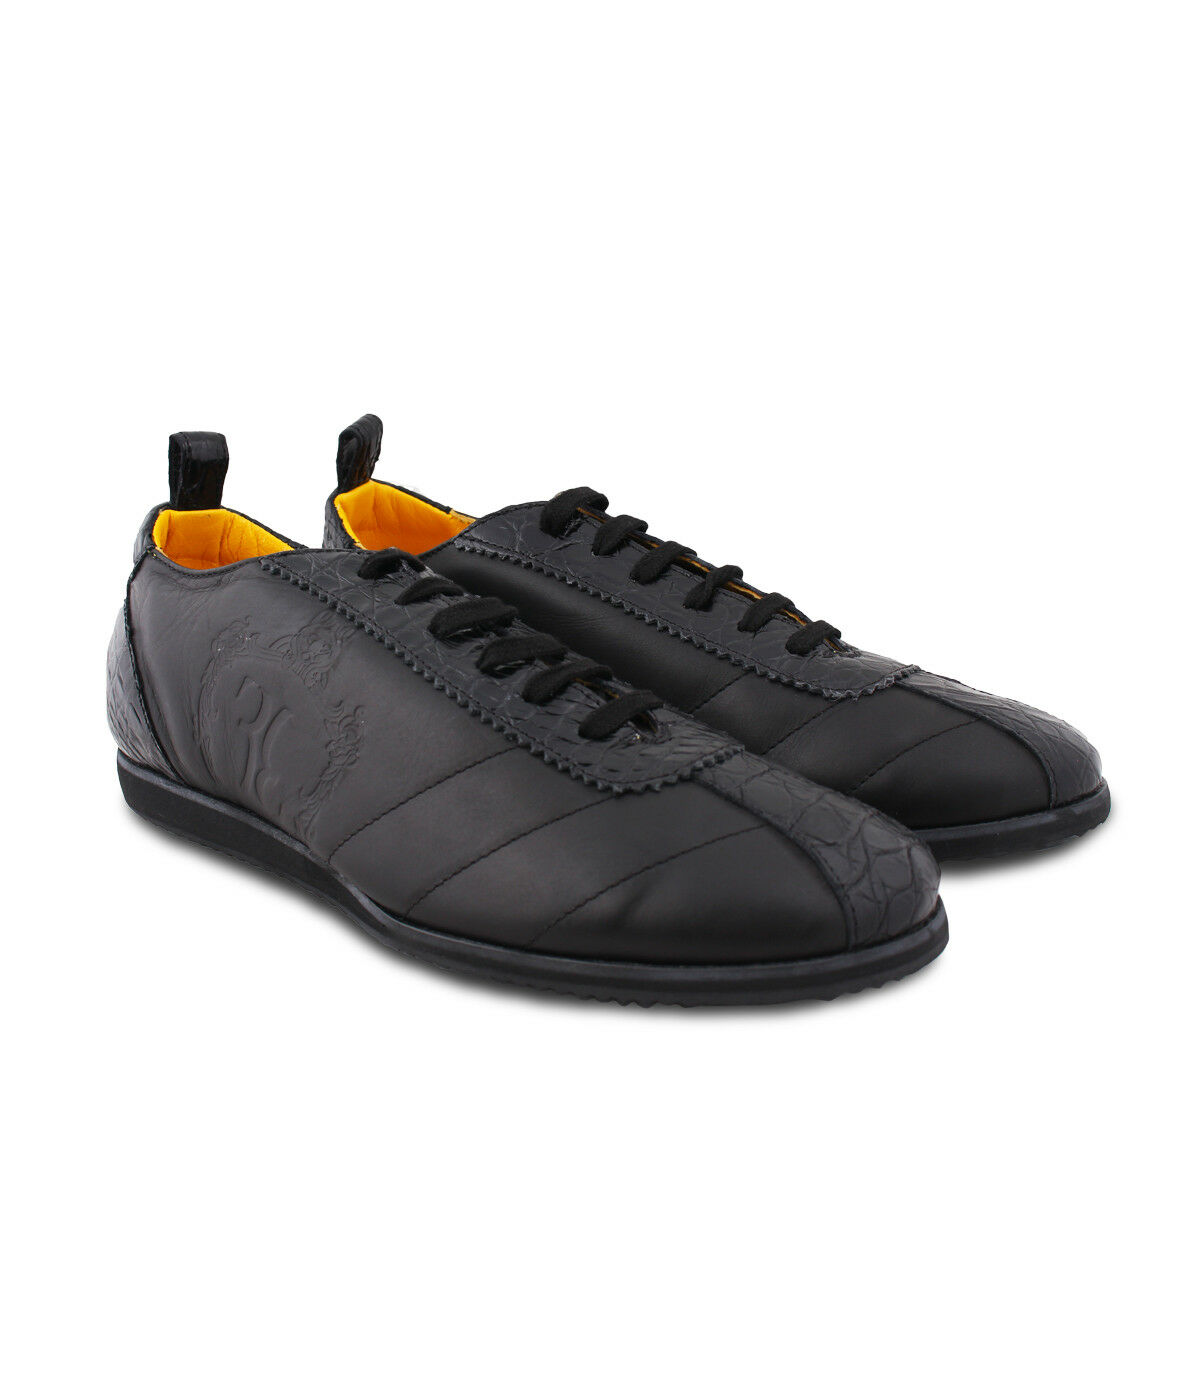 Billionaire Couture Men's Black Calf & Croco Leather Sneakers with Quilted Logo